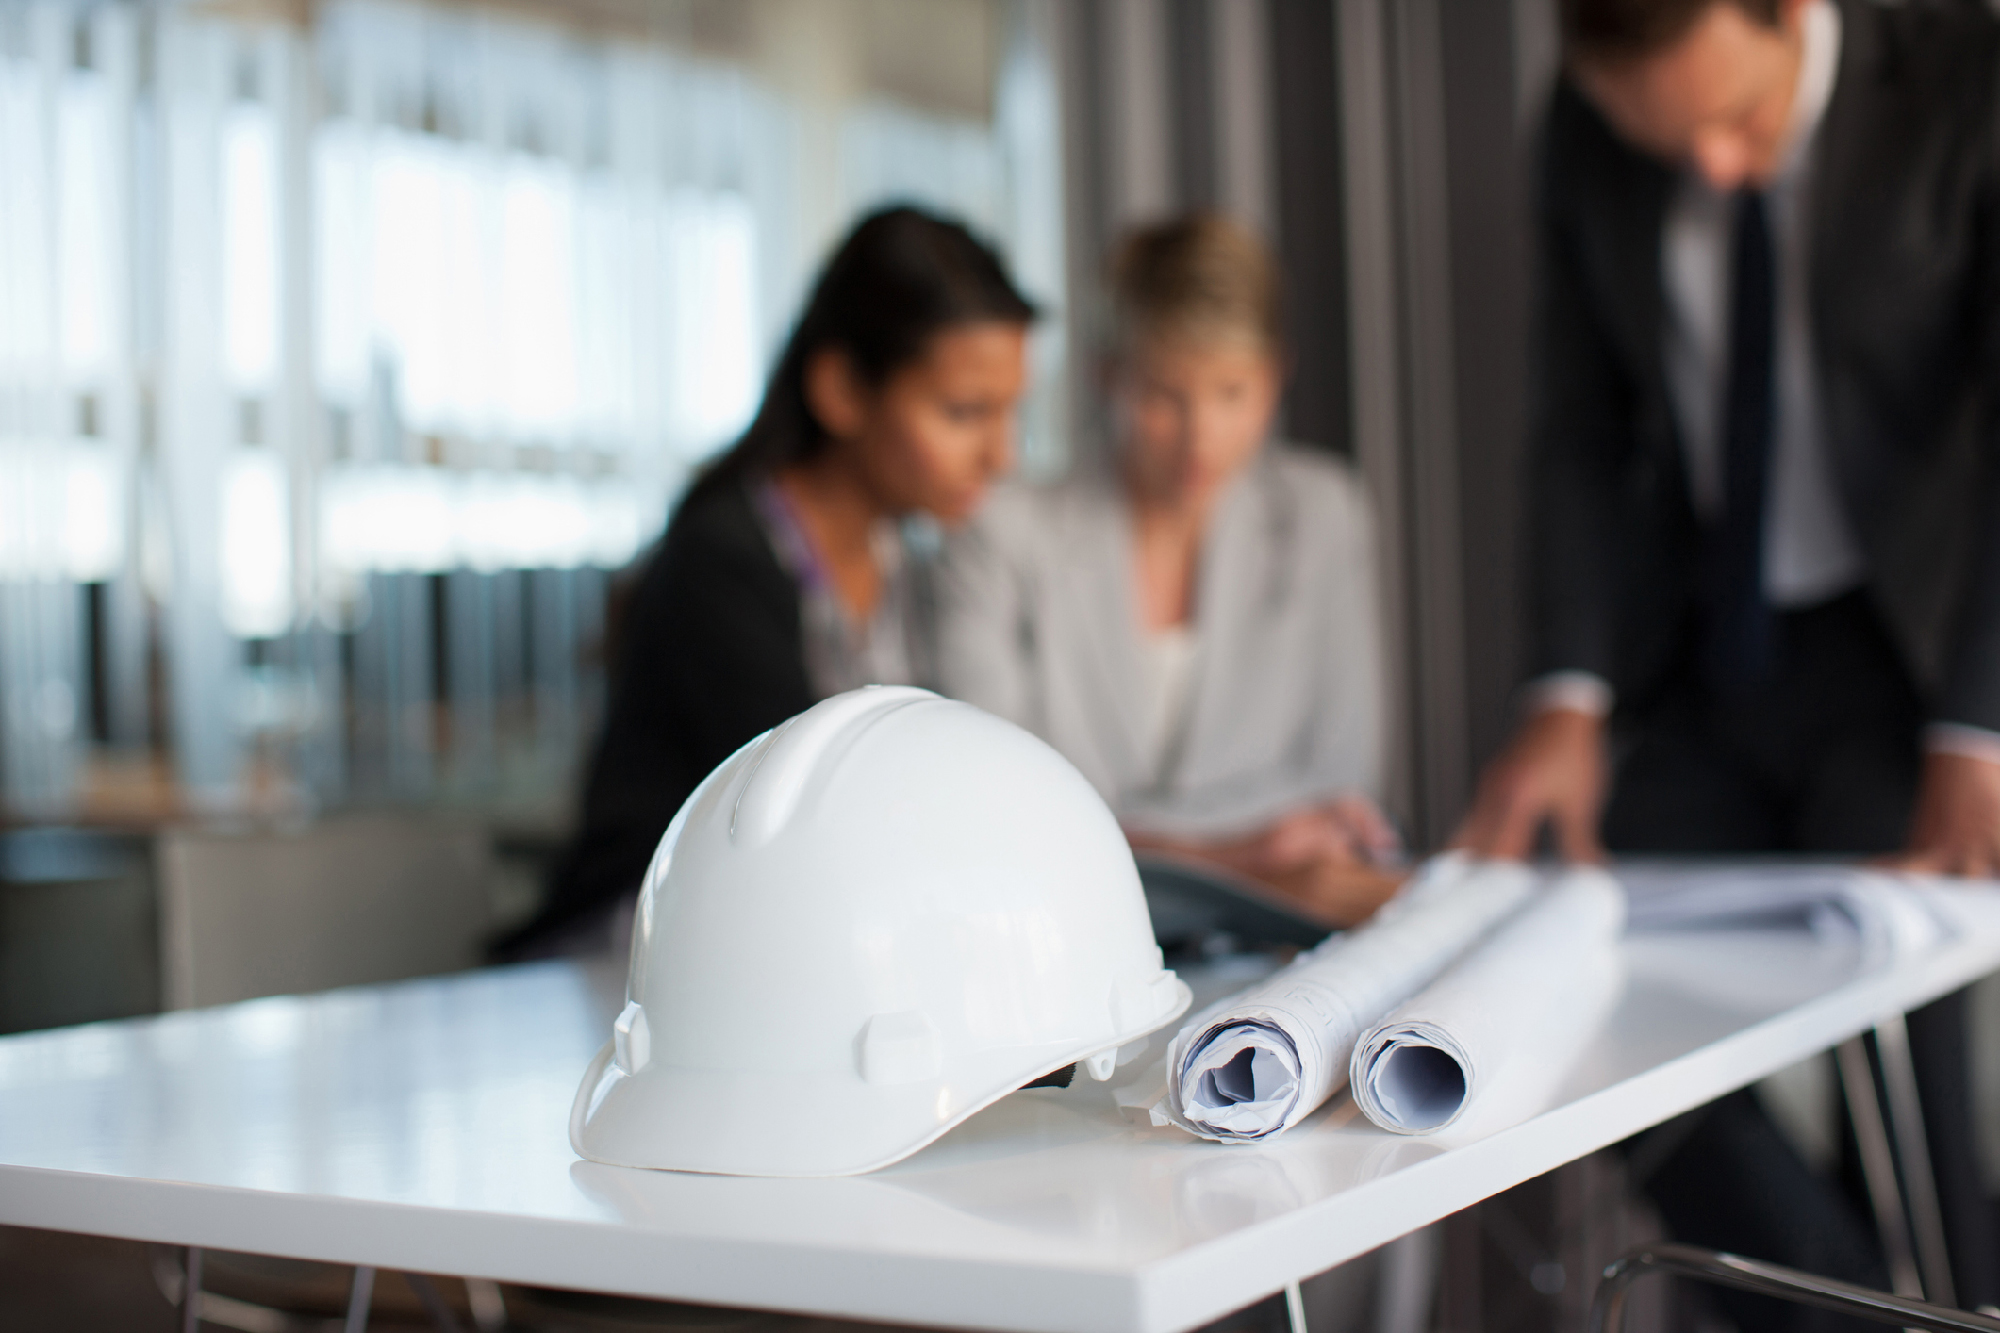 Hard hat in focus with Business people reviewing blueprints in conference room